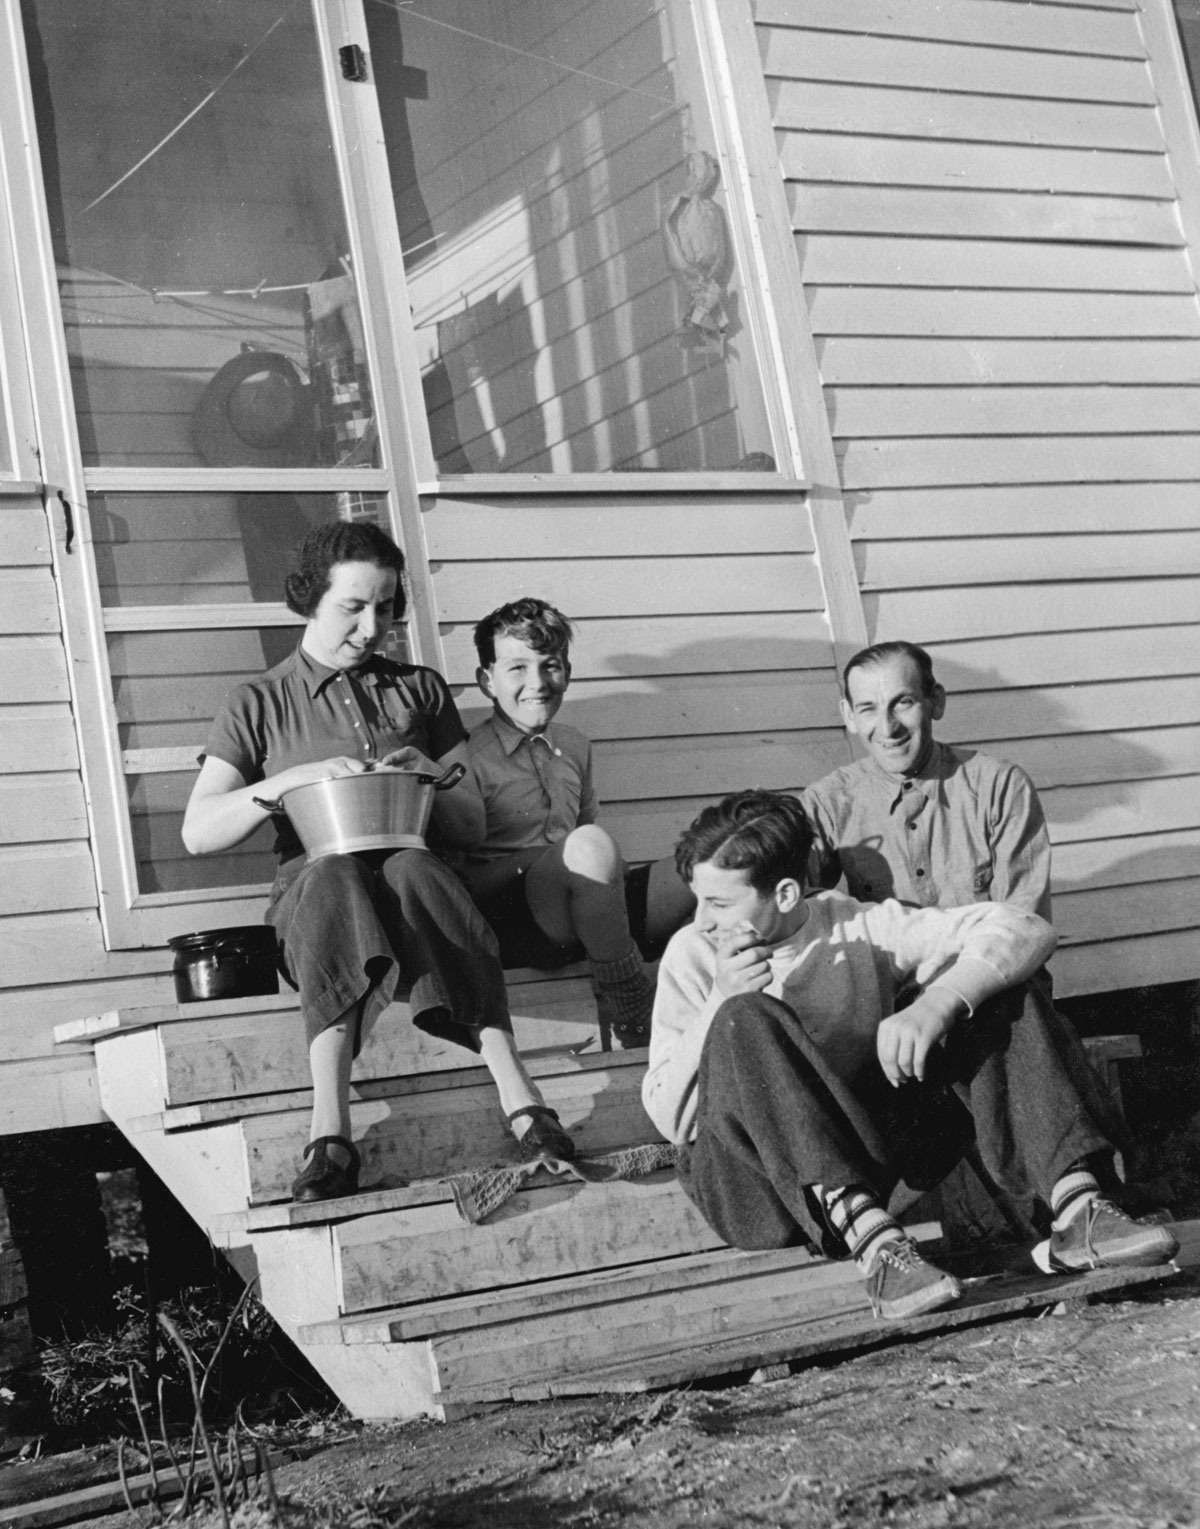 The Loeb Family on their stoop in Van Eeden